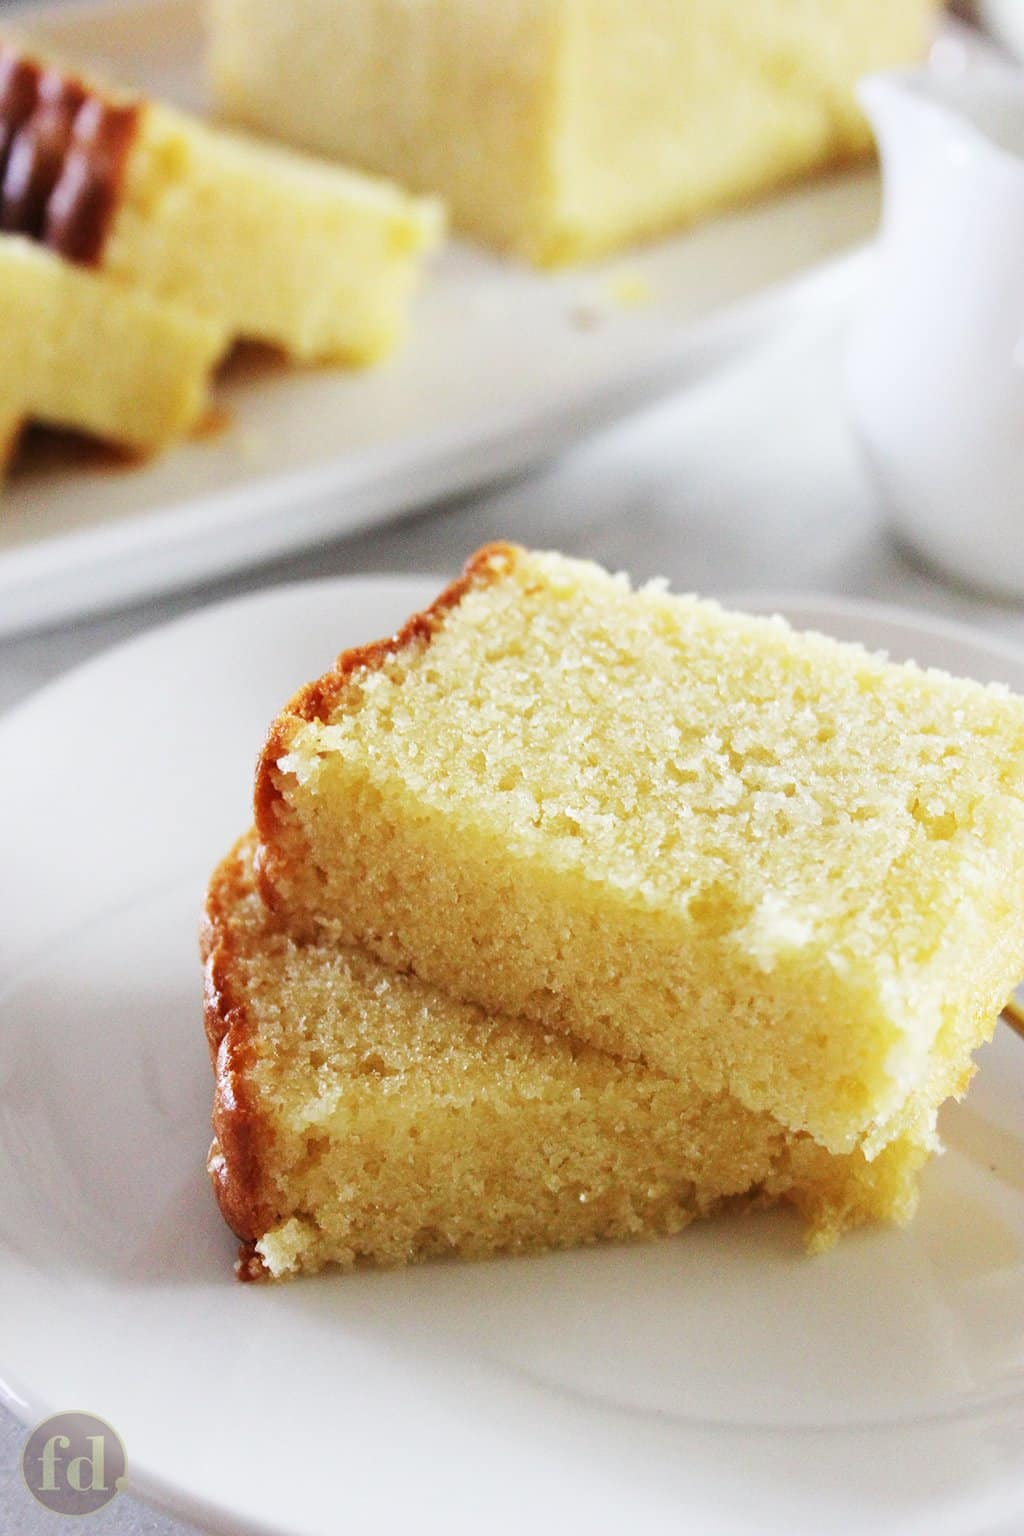 Close-up view of moist crumb of a rich butter cake